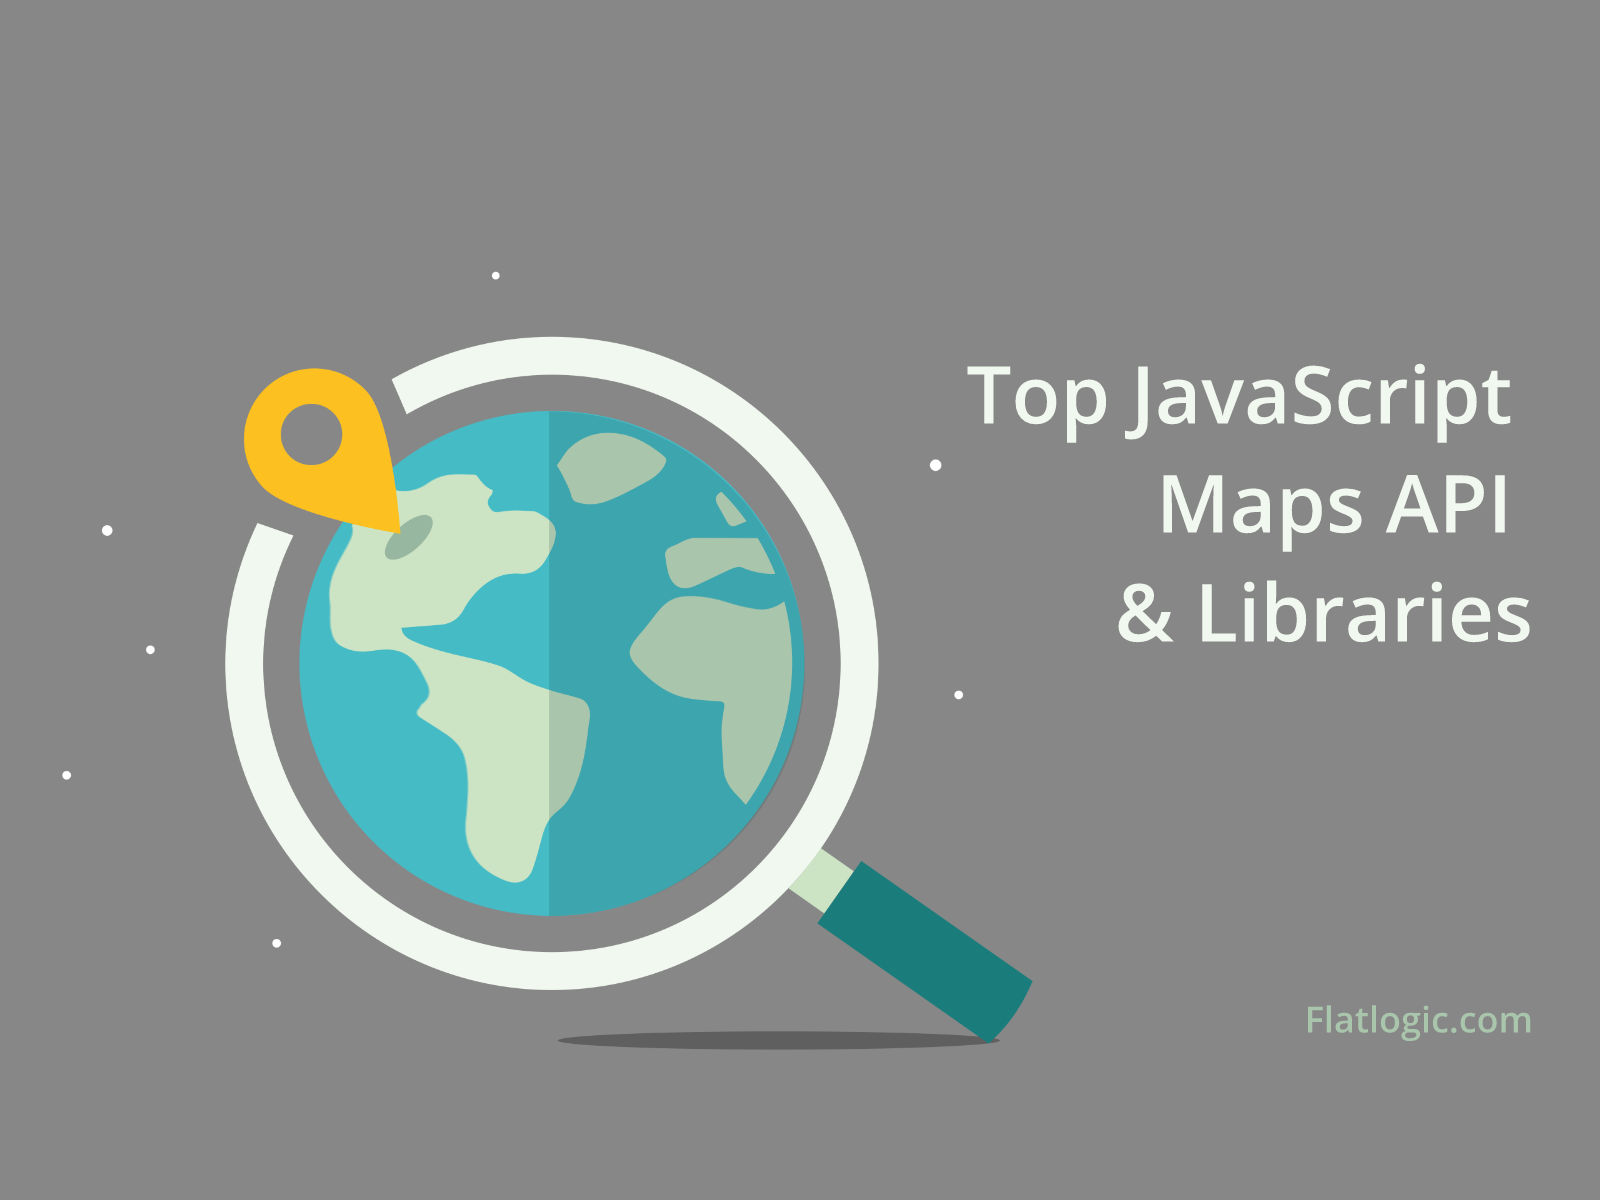 Top JavaScript Maps API and Libraries